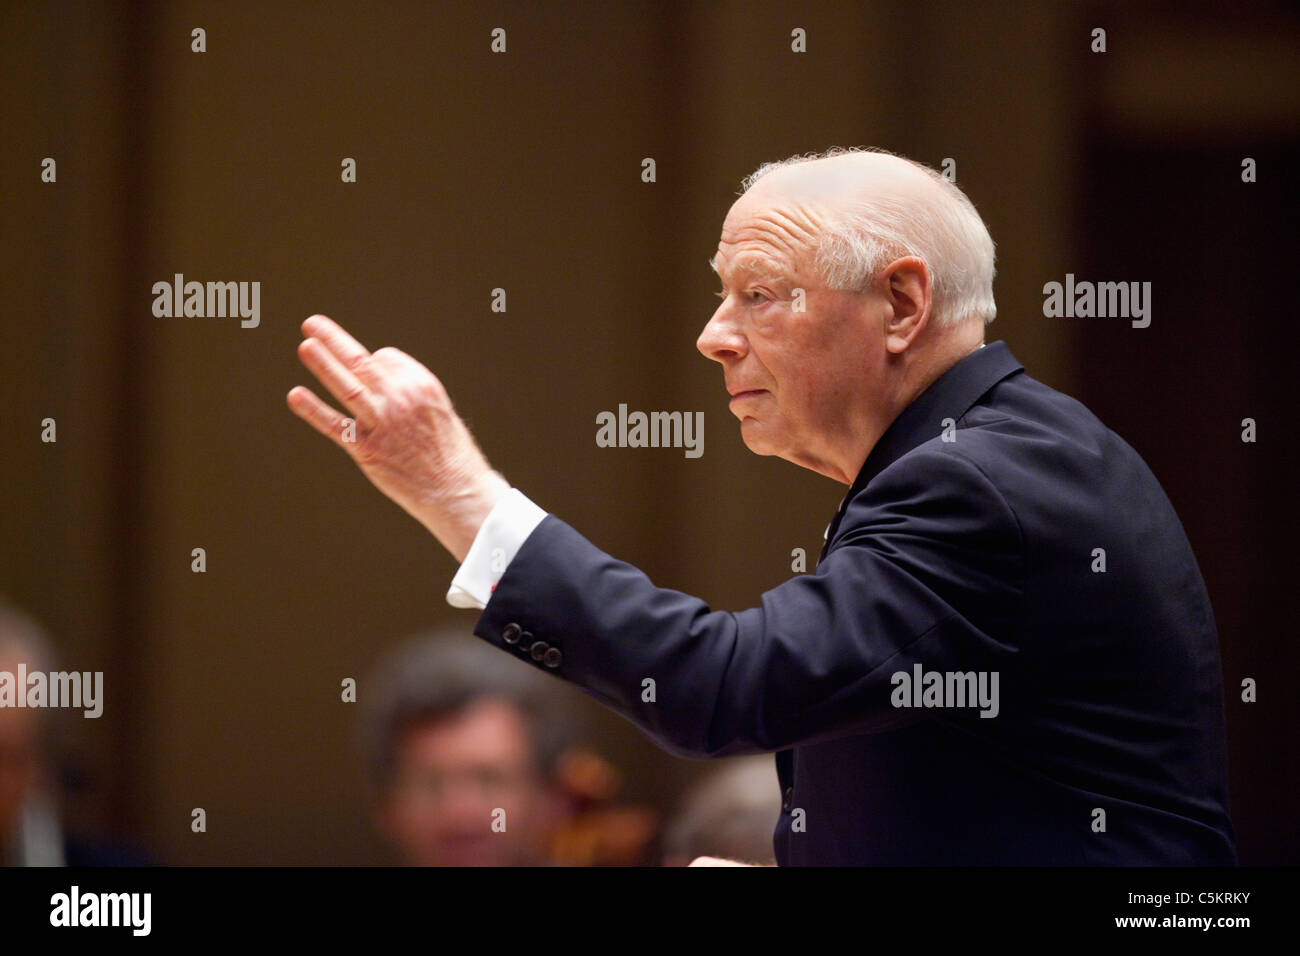 Maestro Bernard Haitink conducts the Chicago Symphony Orchestra as they perform Beethoven's 9th Symphony as - Stock Image